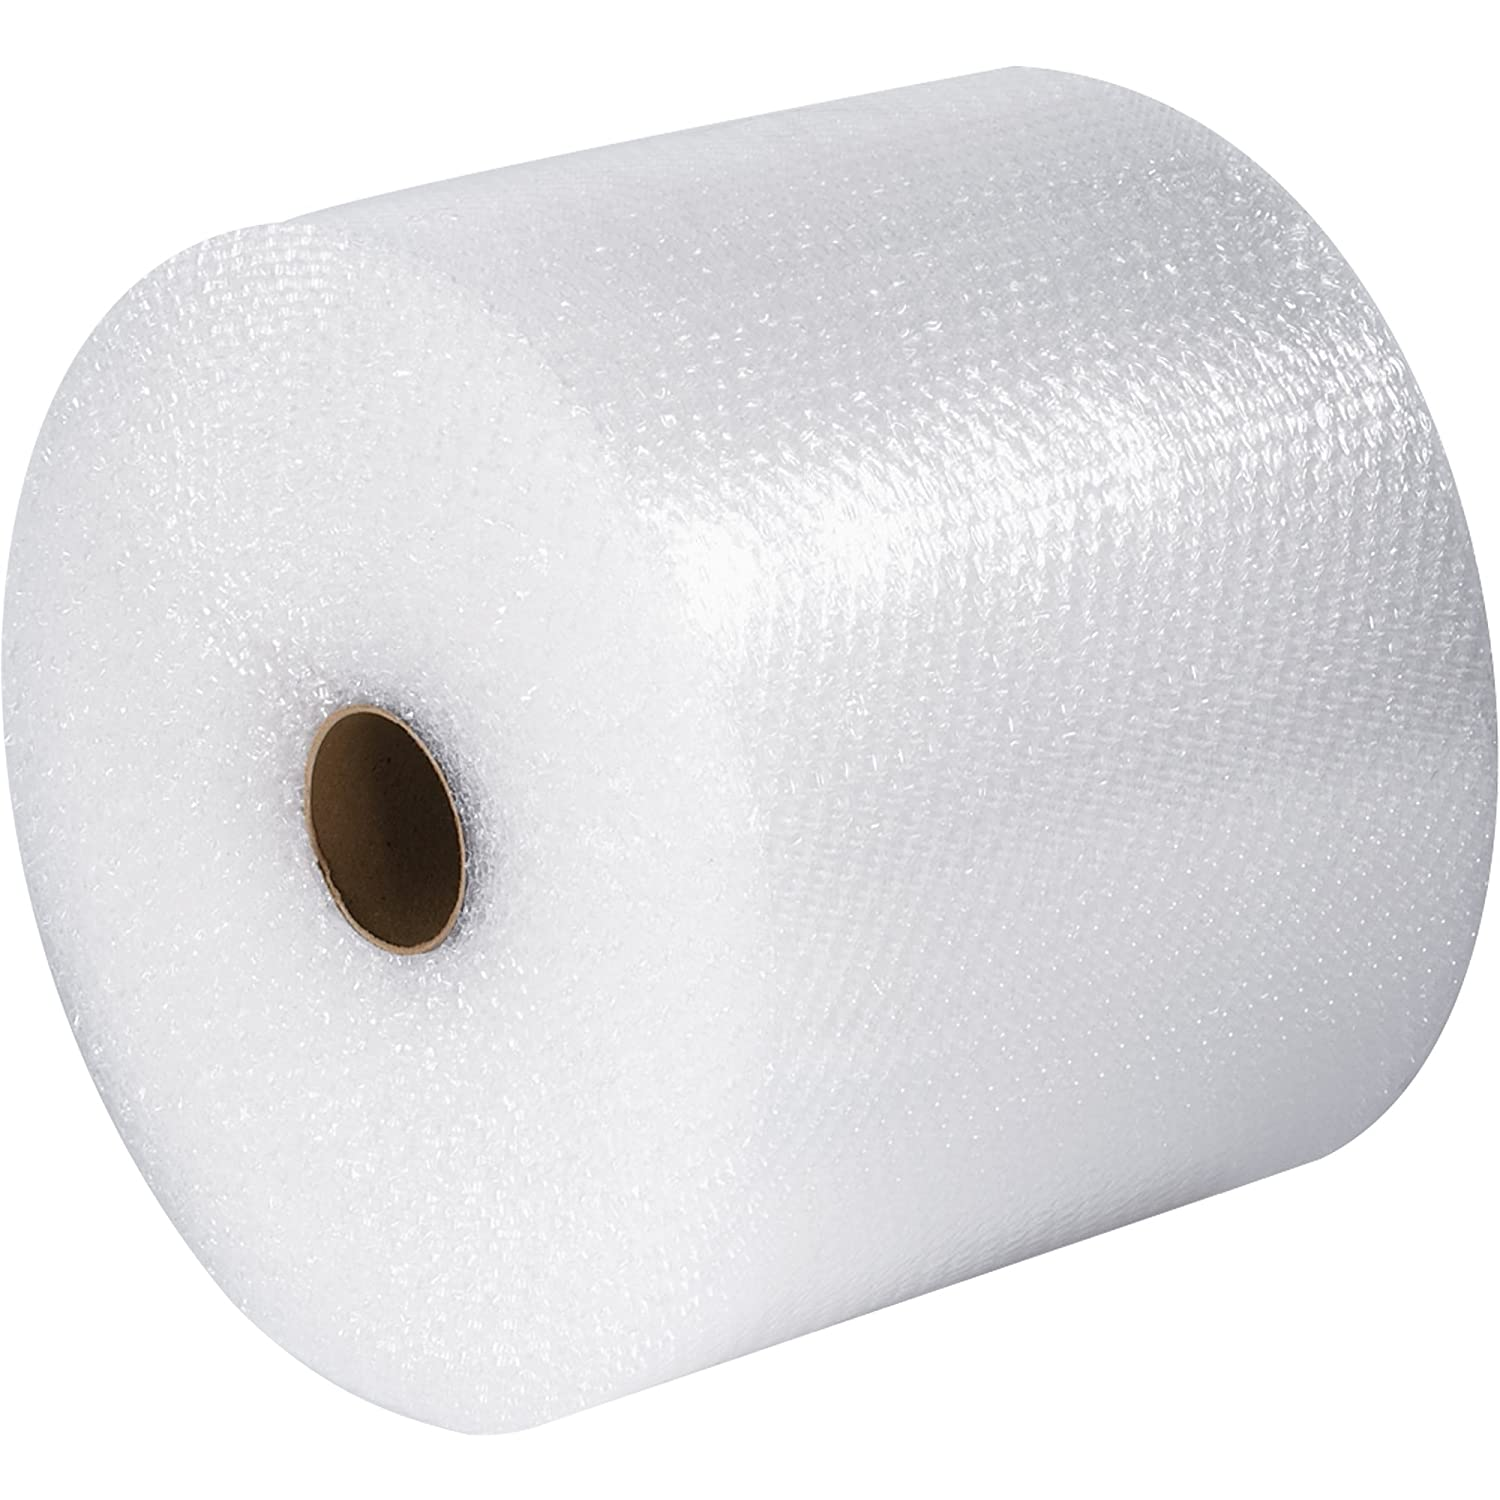 0.5 Height Clear 1//2 x 48 x 125, 48 Width 1 Roll Ship Now Supply SNBWUP1248P Upsable Perforated Air Bubble Rolls